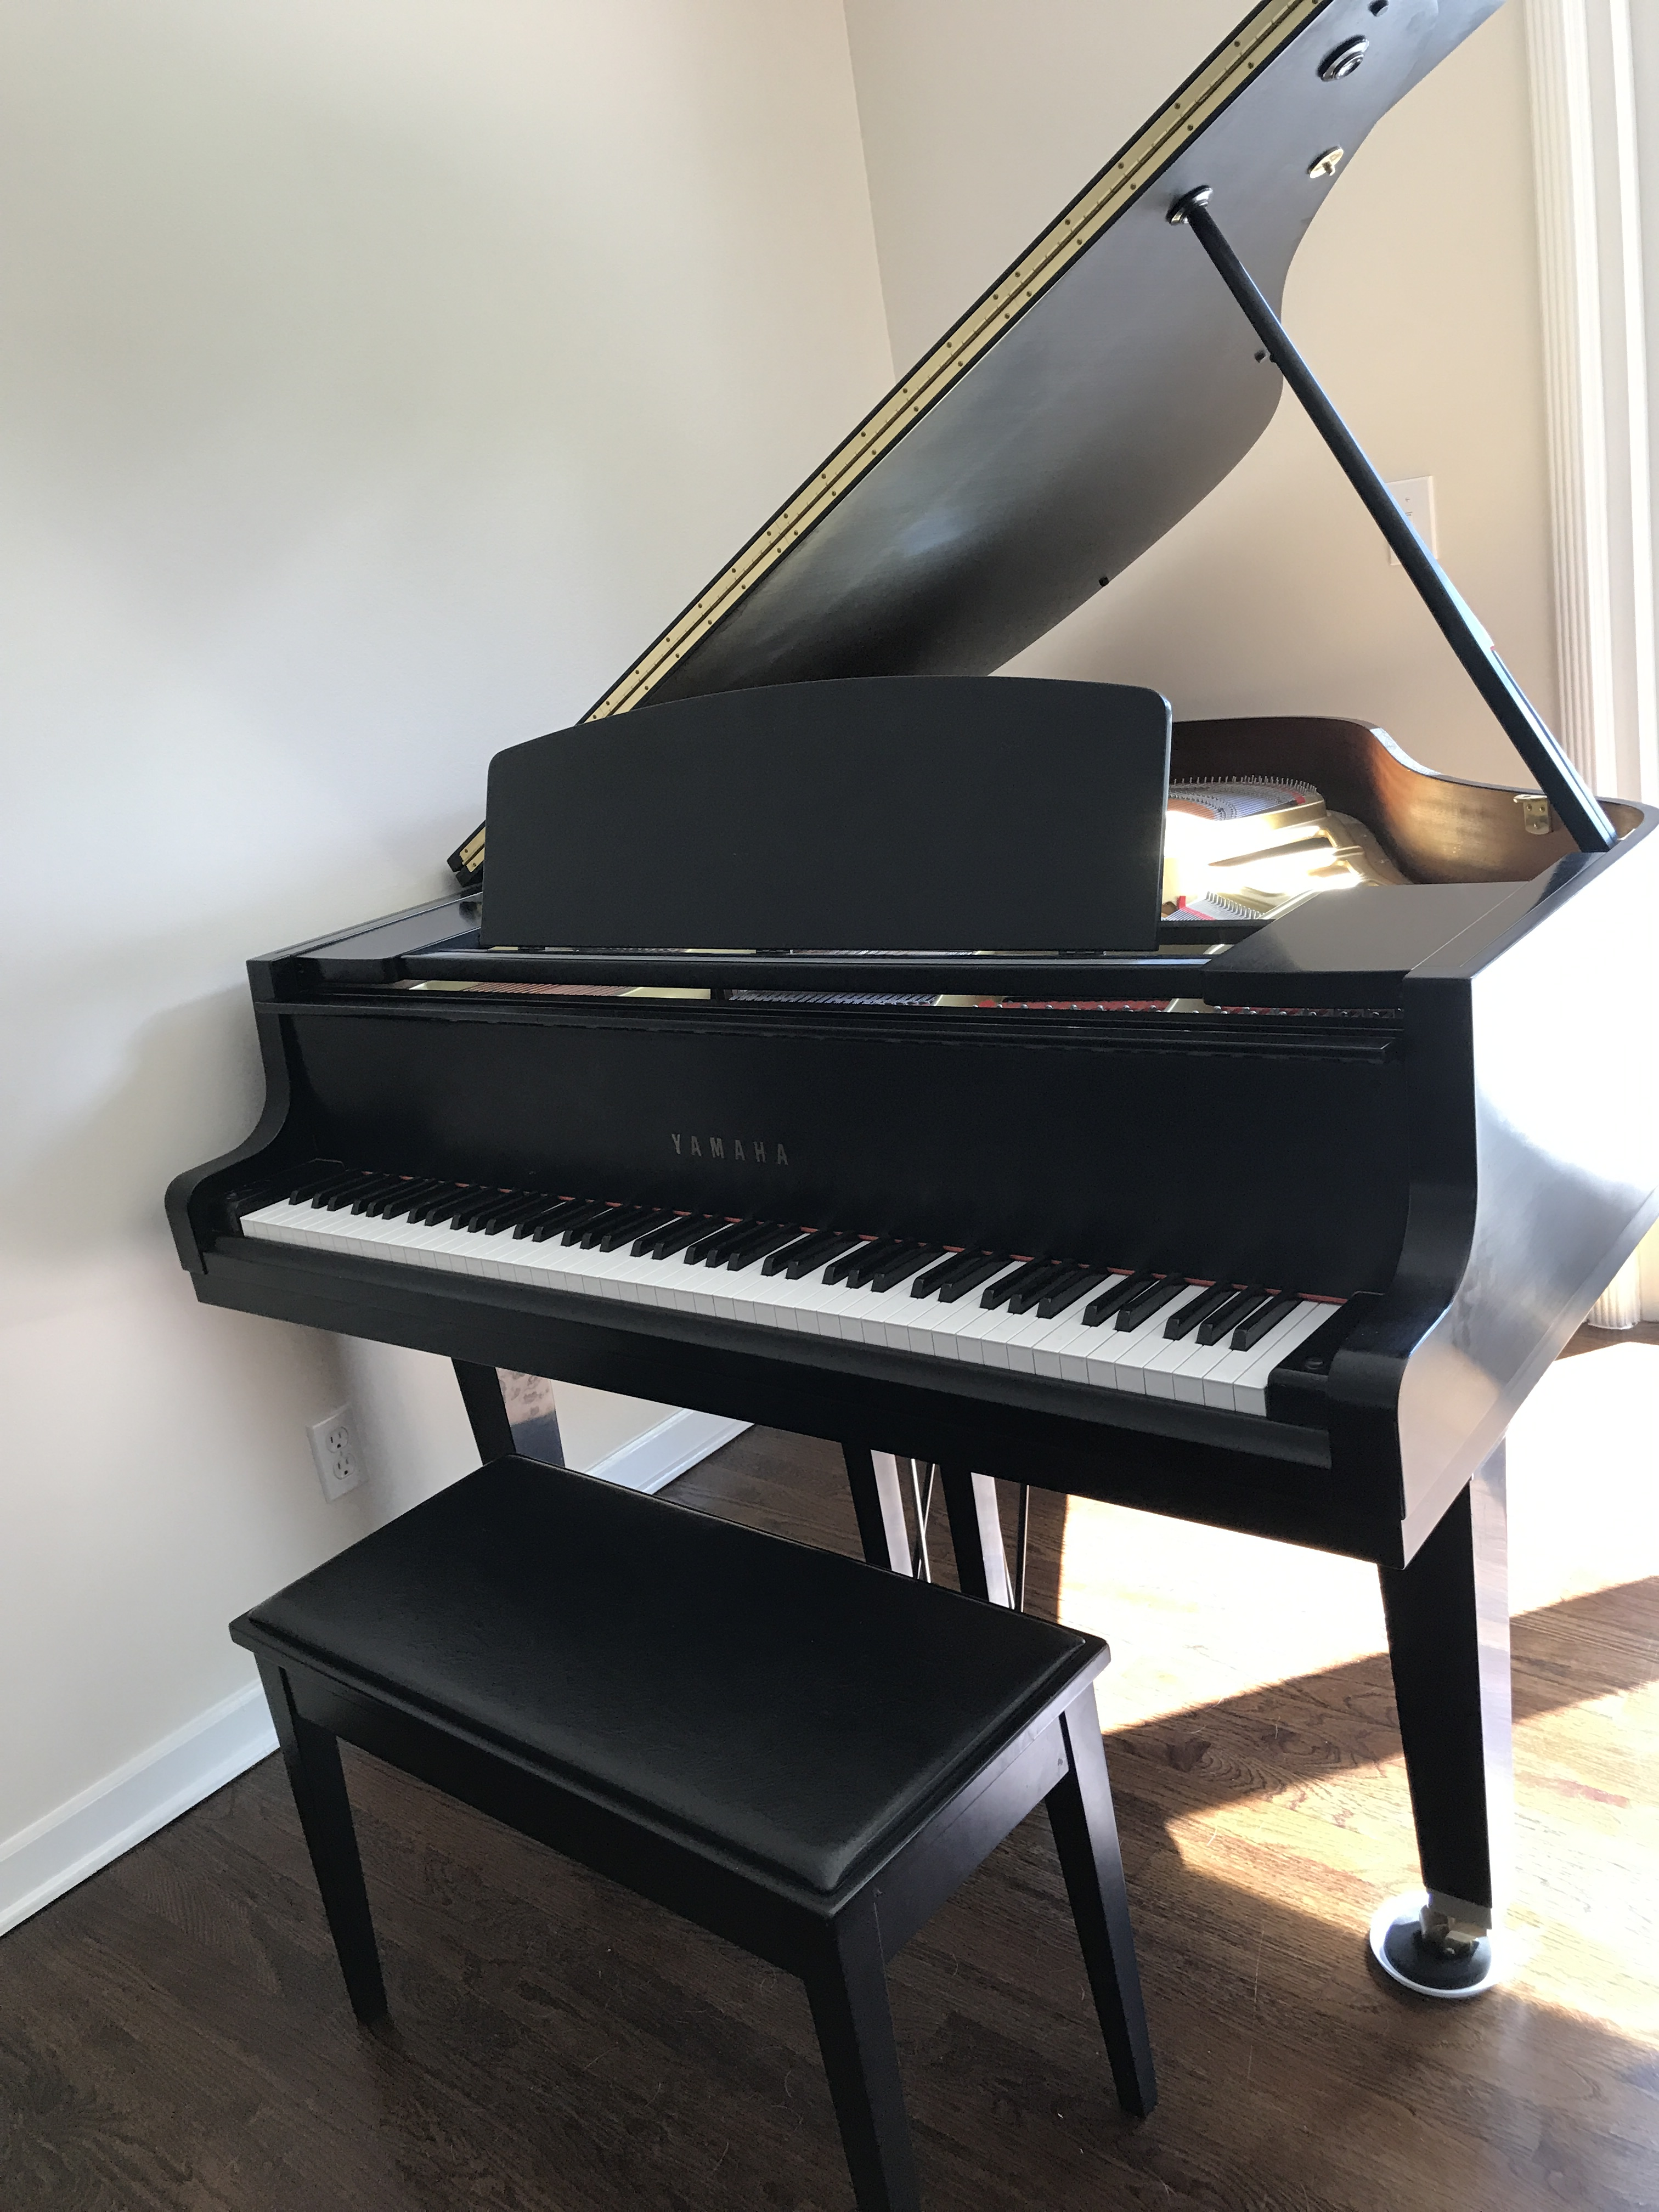 Yamaha gh1 baby grand piano pianos for sale for Yamaha grand pianos for sale